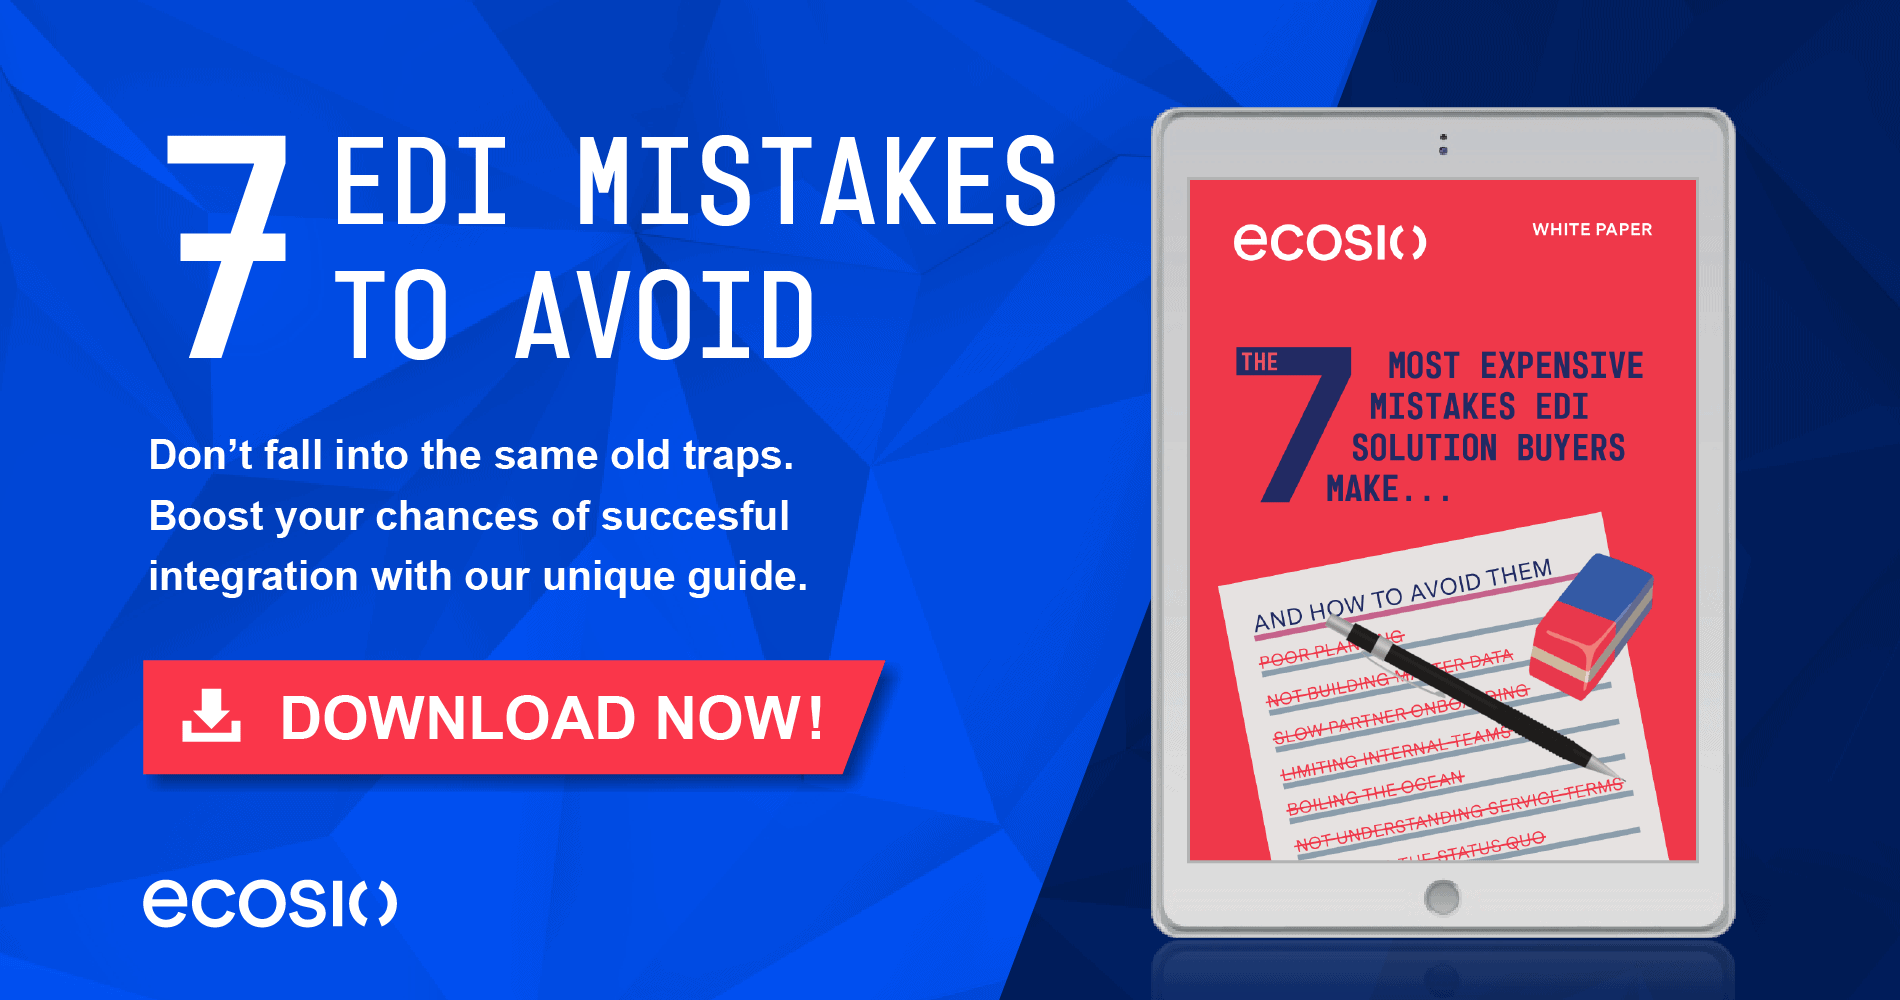 White Paper - 7 Mistakes EDI Solution Buyers Make